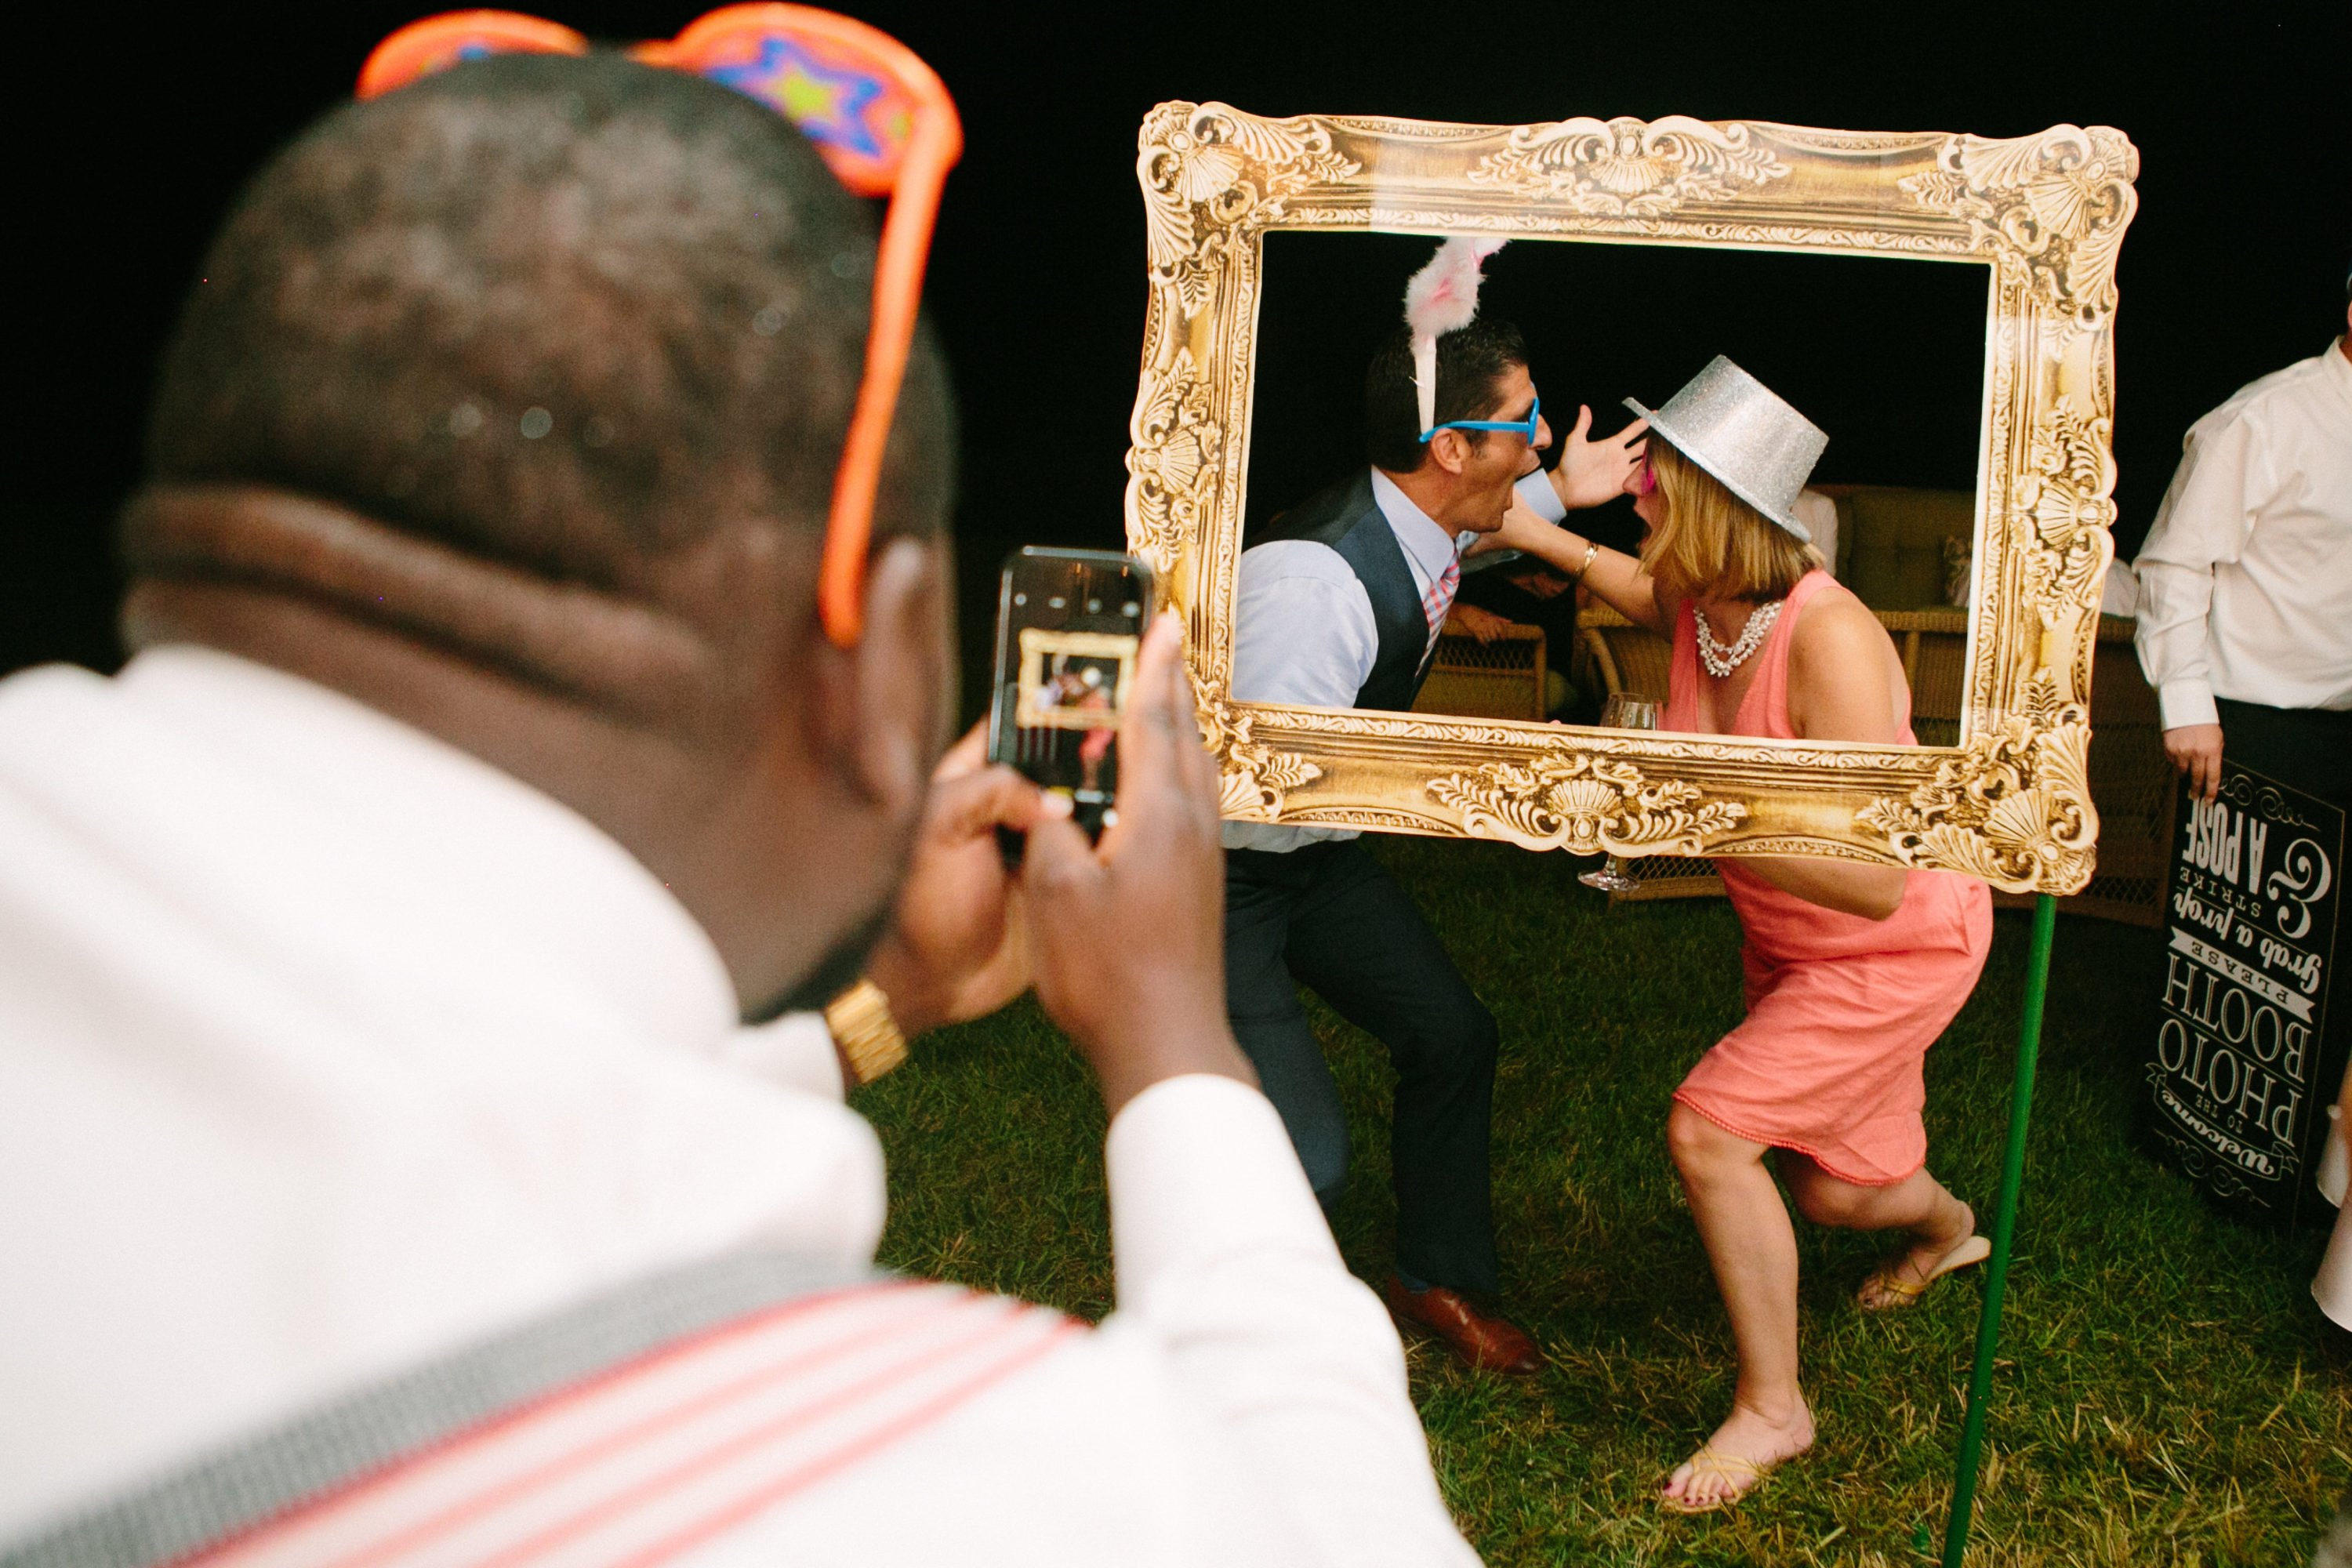 Katelyn Mancini and Jordan Coffman Deer Wedding With Silent Disco and Bicycle